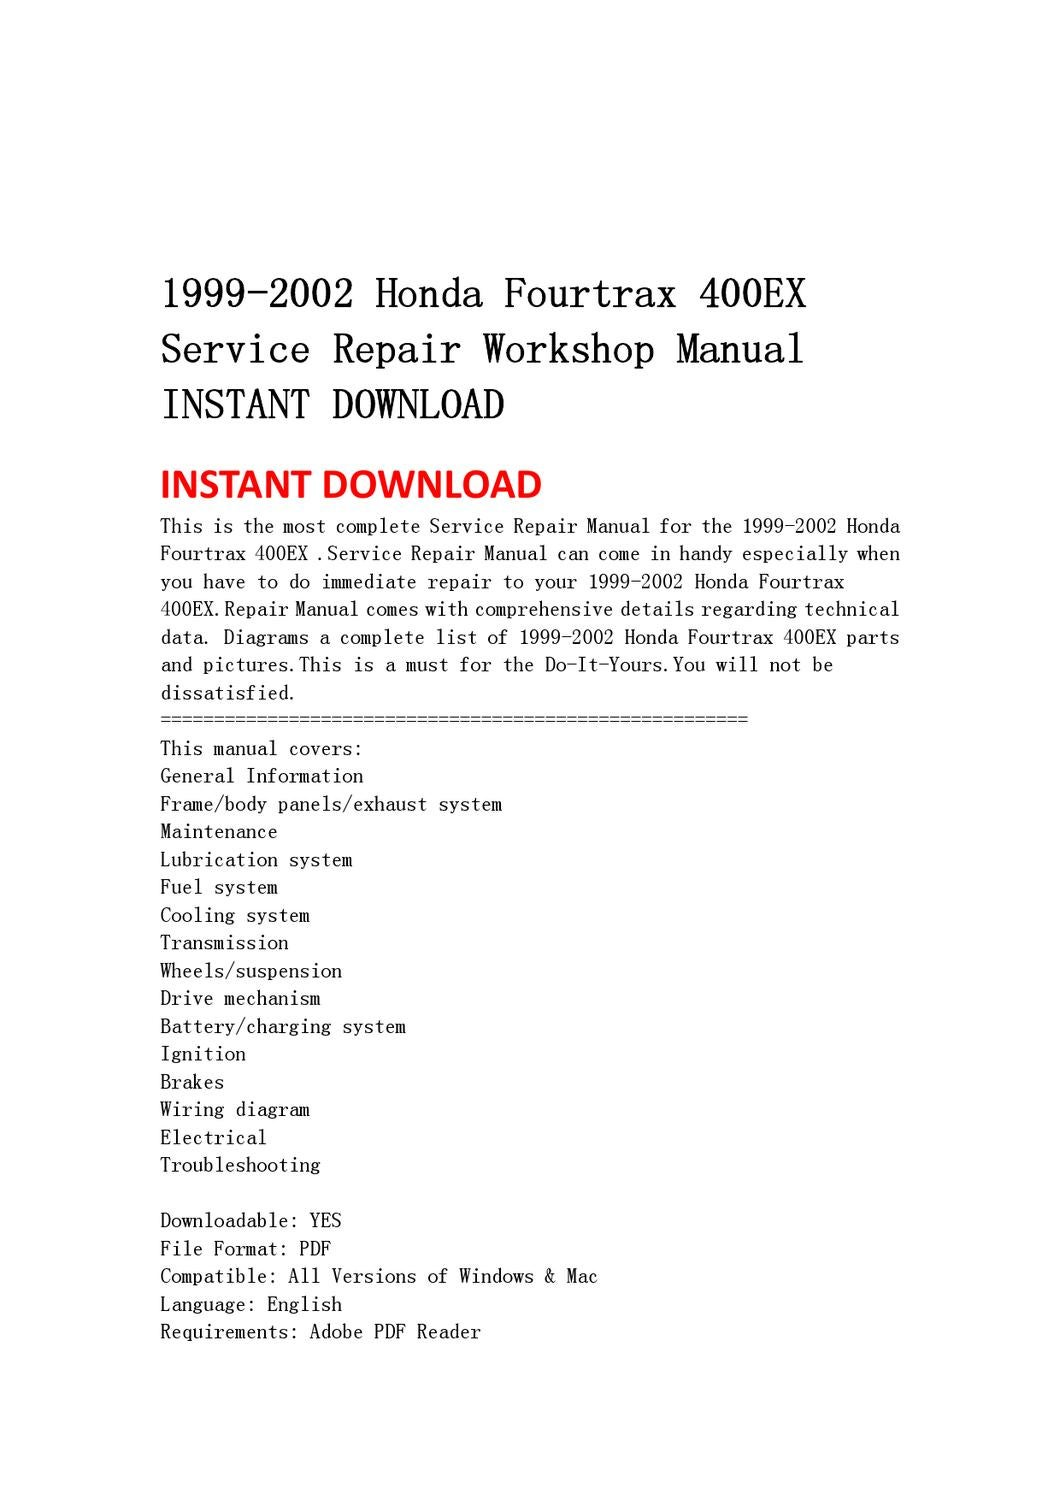 1999 2002 Honda Fourtrax 400ex Service Repair Workshop Manual Ignition Wiring Diagram Instant Download By Lin Leiww Issuu